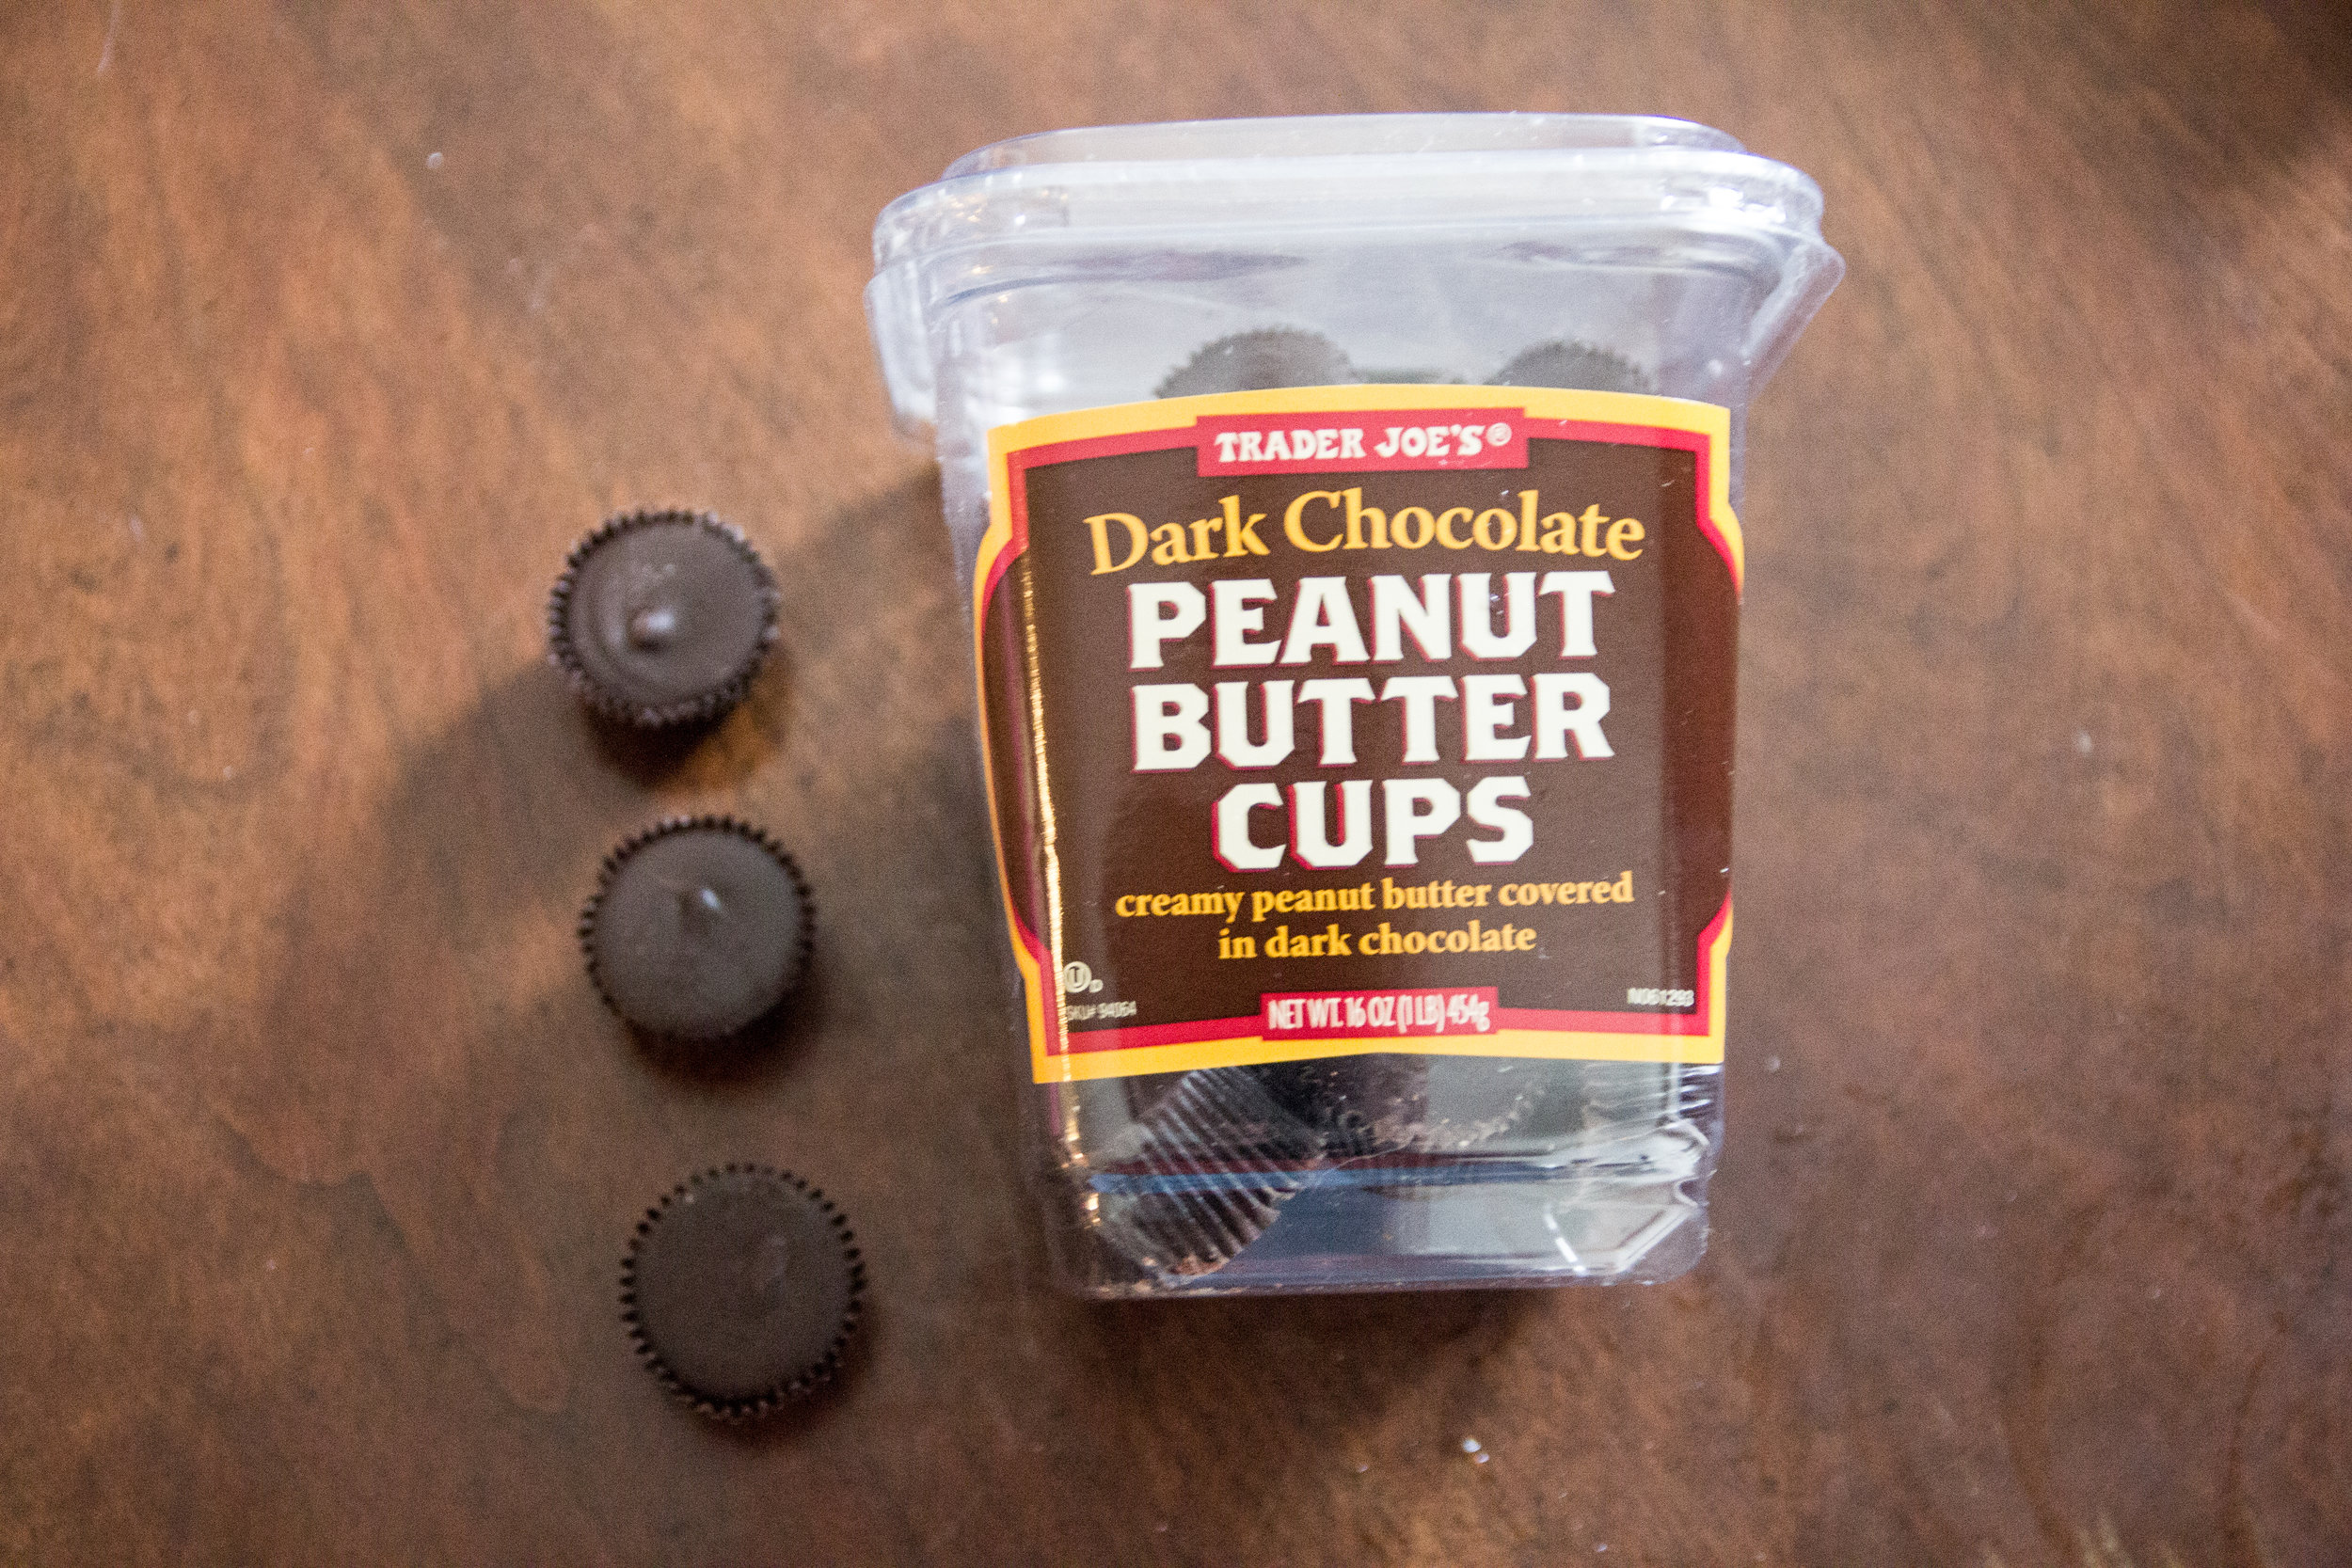 best things to buy from trader joe's, what to buy from trader joe's, favorite 13 items from Trader Joe's,  dark chocolate peanut butter cups